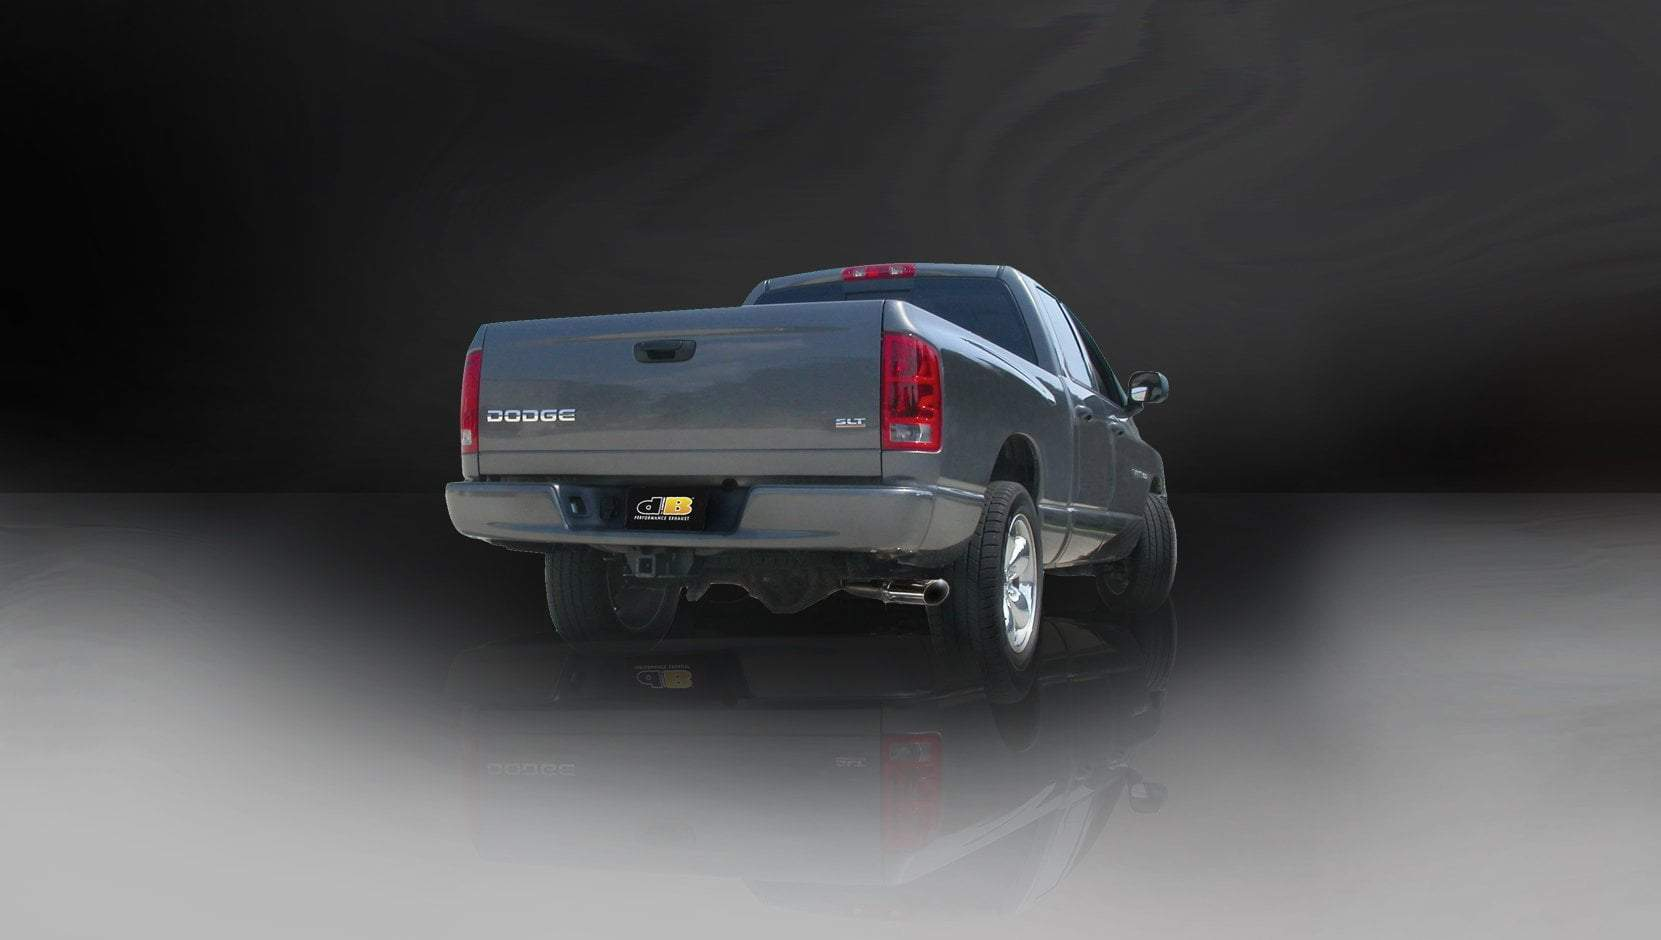 "dB Cat-Back Exhaust Polished / Sport / Single Side - Single 4in Slash Cut 2003 Dodge RAM 1500 4.7L, 5.7L V8, 3.0"" Single Side Exit Catback Exhaust System with 4.0"" Tip (24401) SPORT Sound Level"